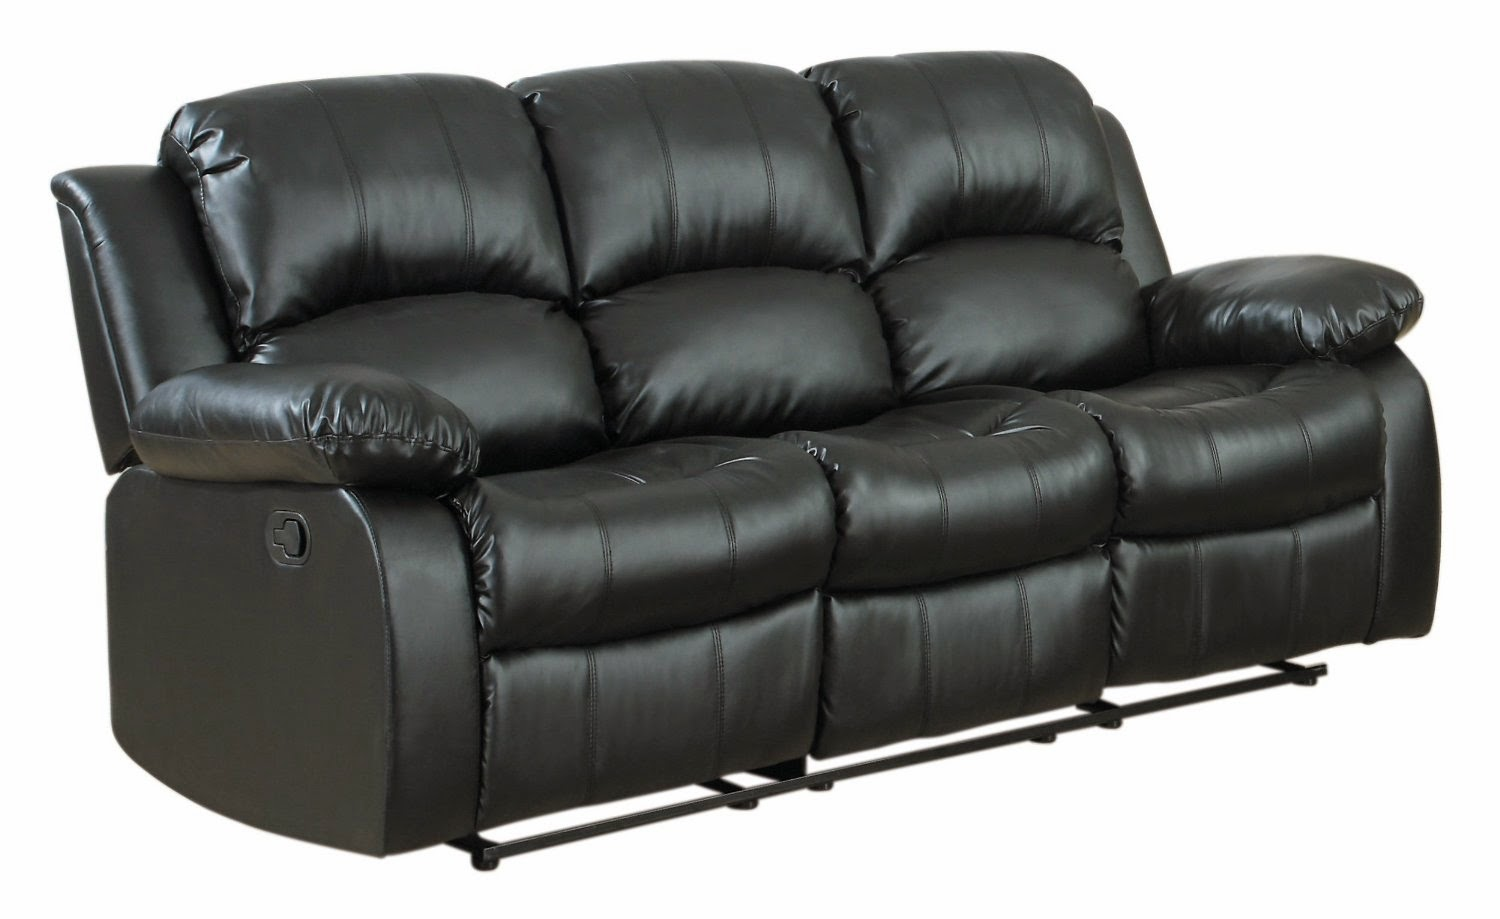 dual reclining sofa slipcover slumberland com sofas the best reviews rotunda black faux